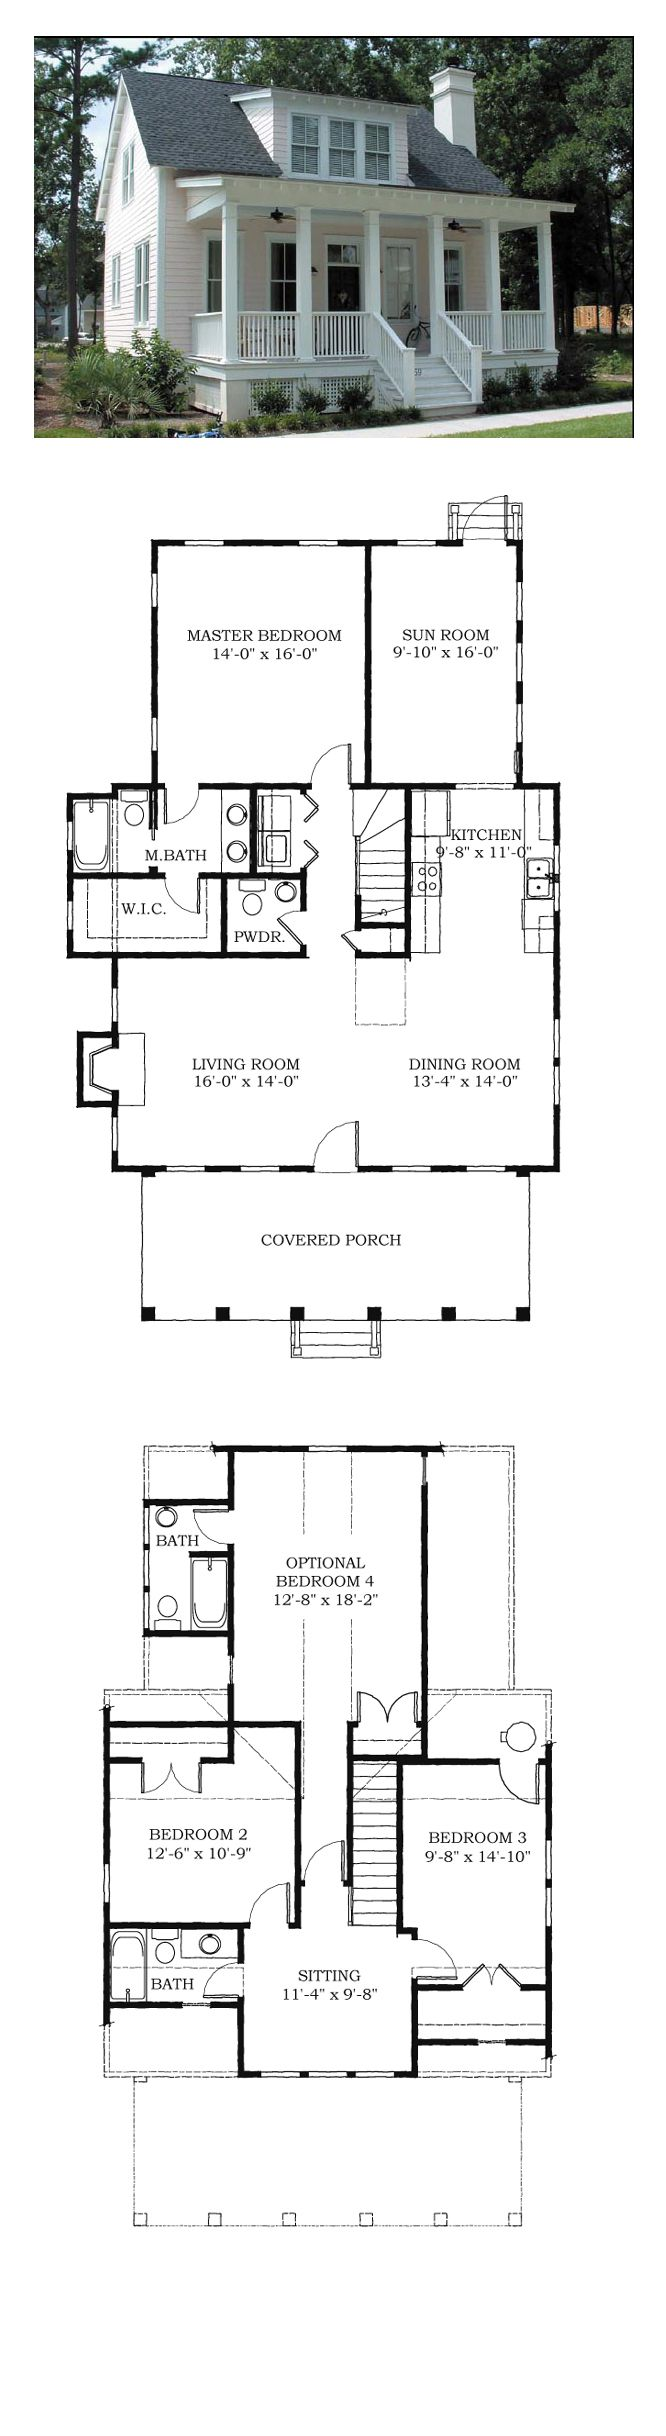 House Plan chp 38703 in 2018 My